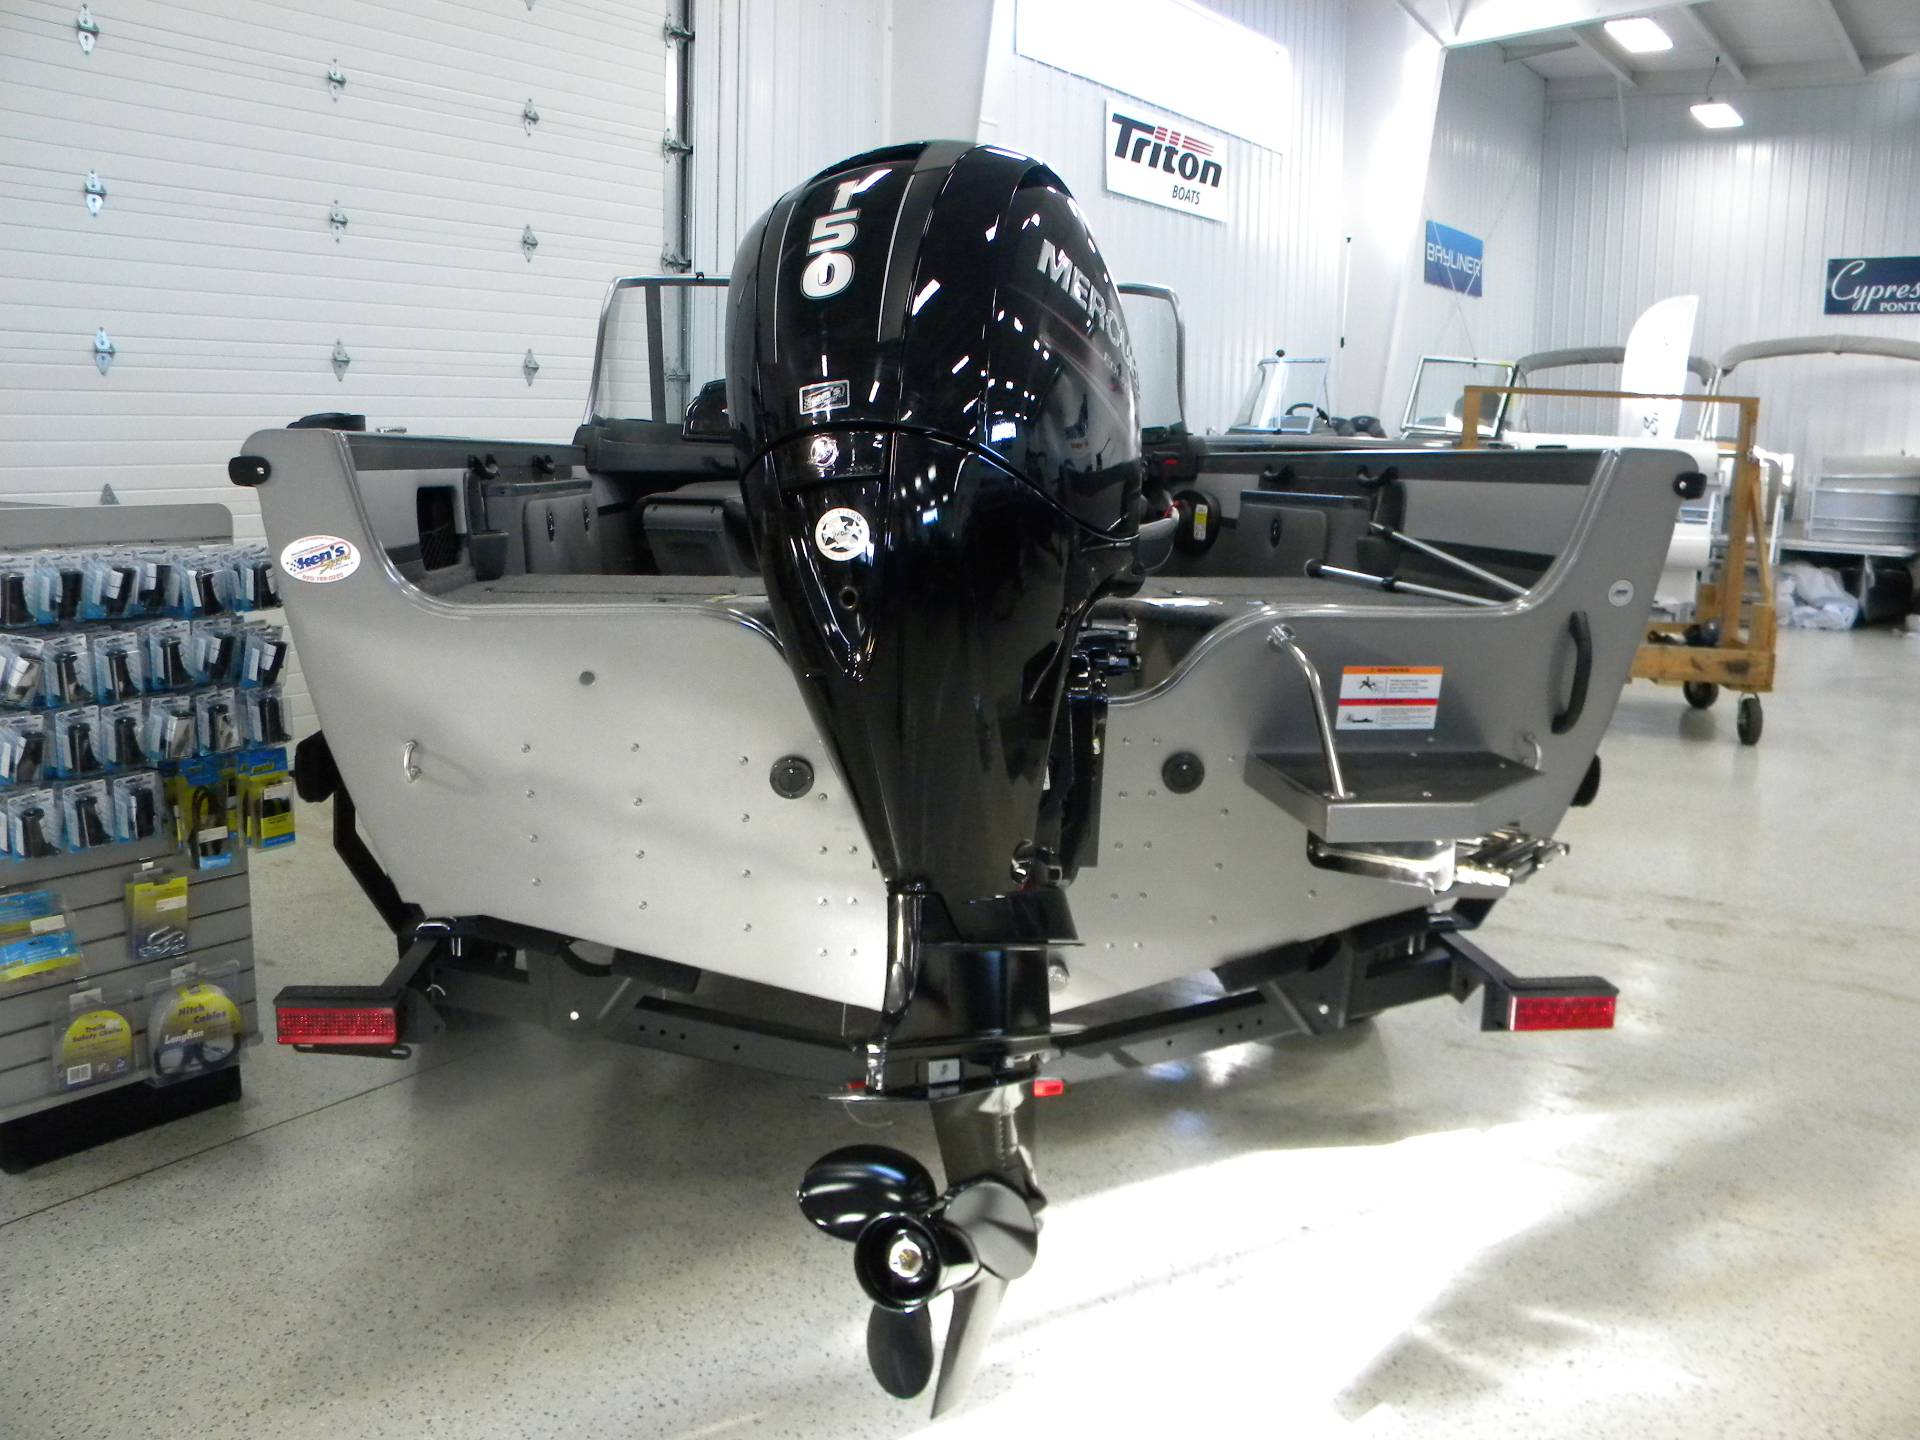 2019 Crestliner 1850 Sportfish Outboard in Kaukauna, Wisconsin - Photo 2